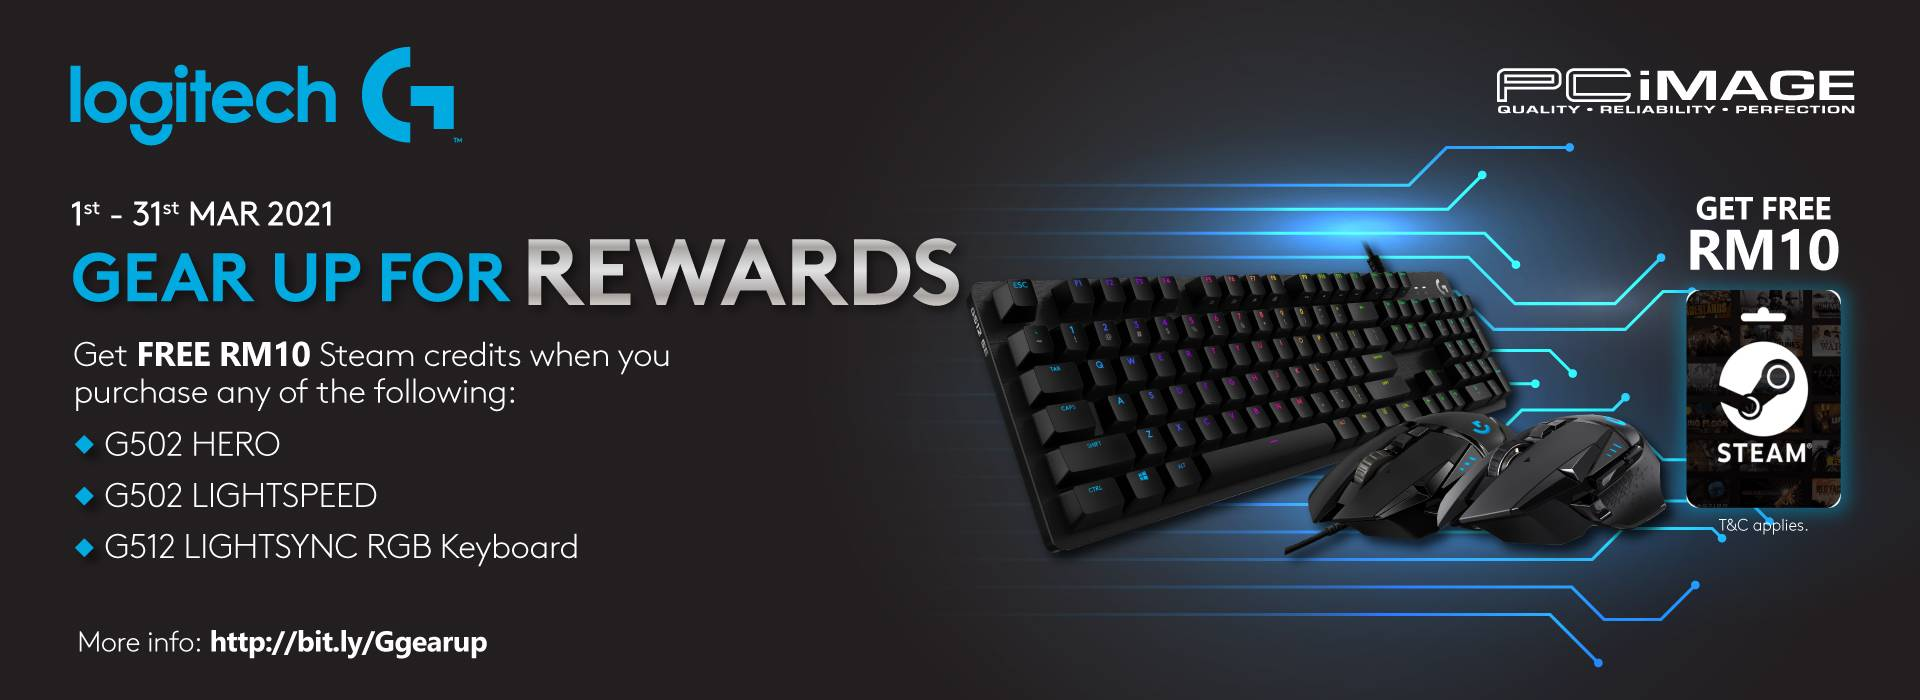 Gear up with rewards 31 March